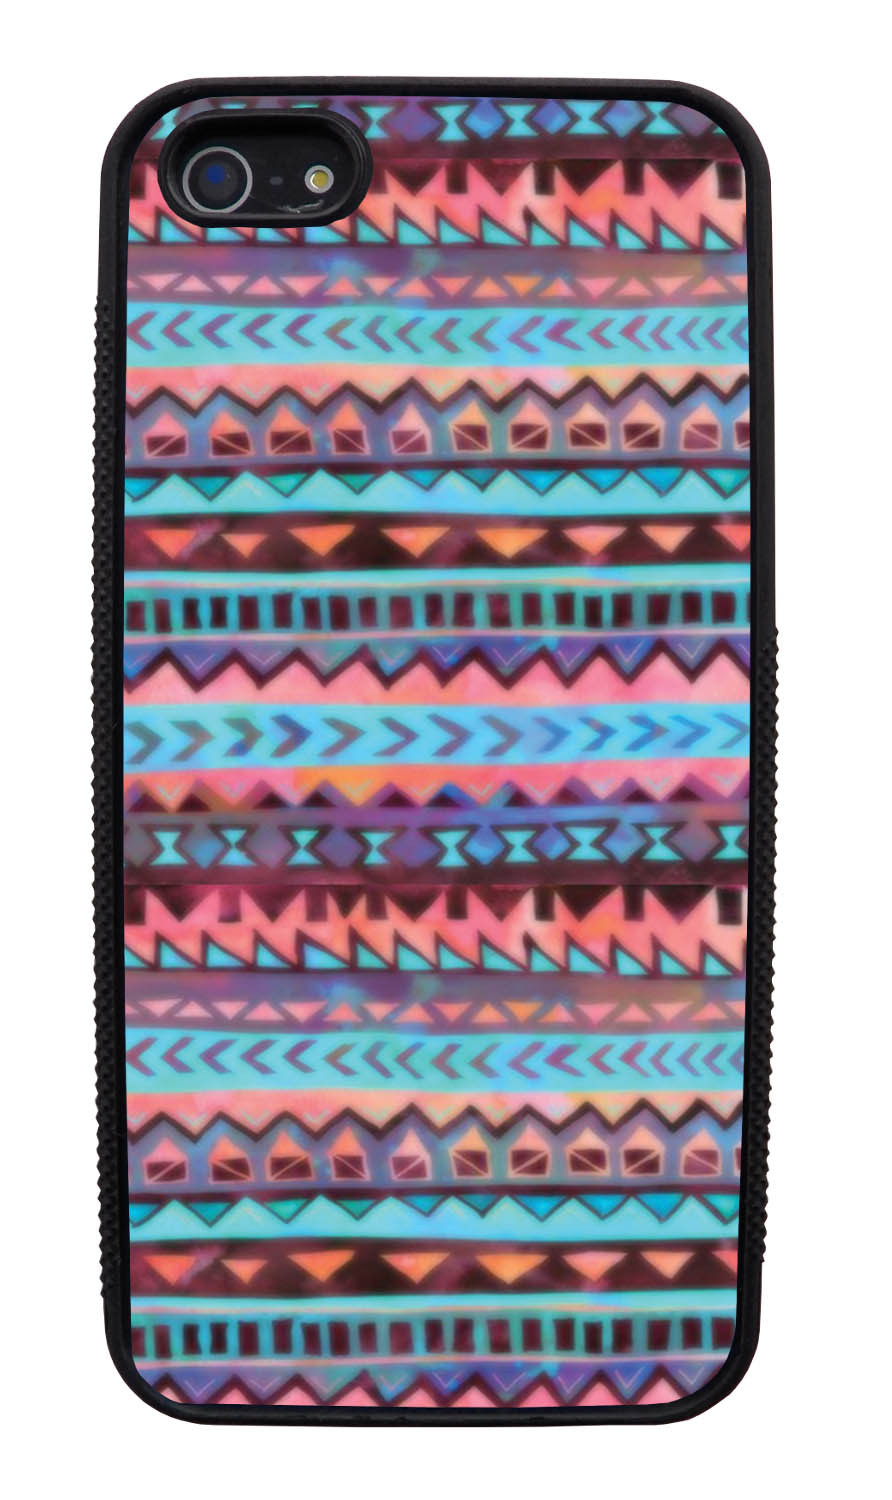 Apple iPhone 5 / 5S Aztec Case - Pink and Purple Traditional - Ceramic Glaze Like - Black Slim Rubber Case